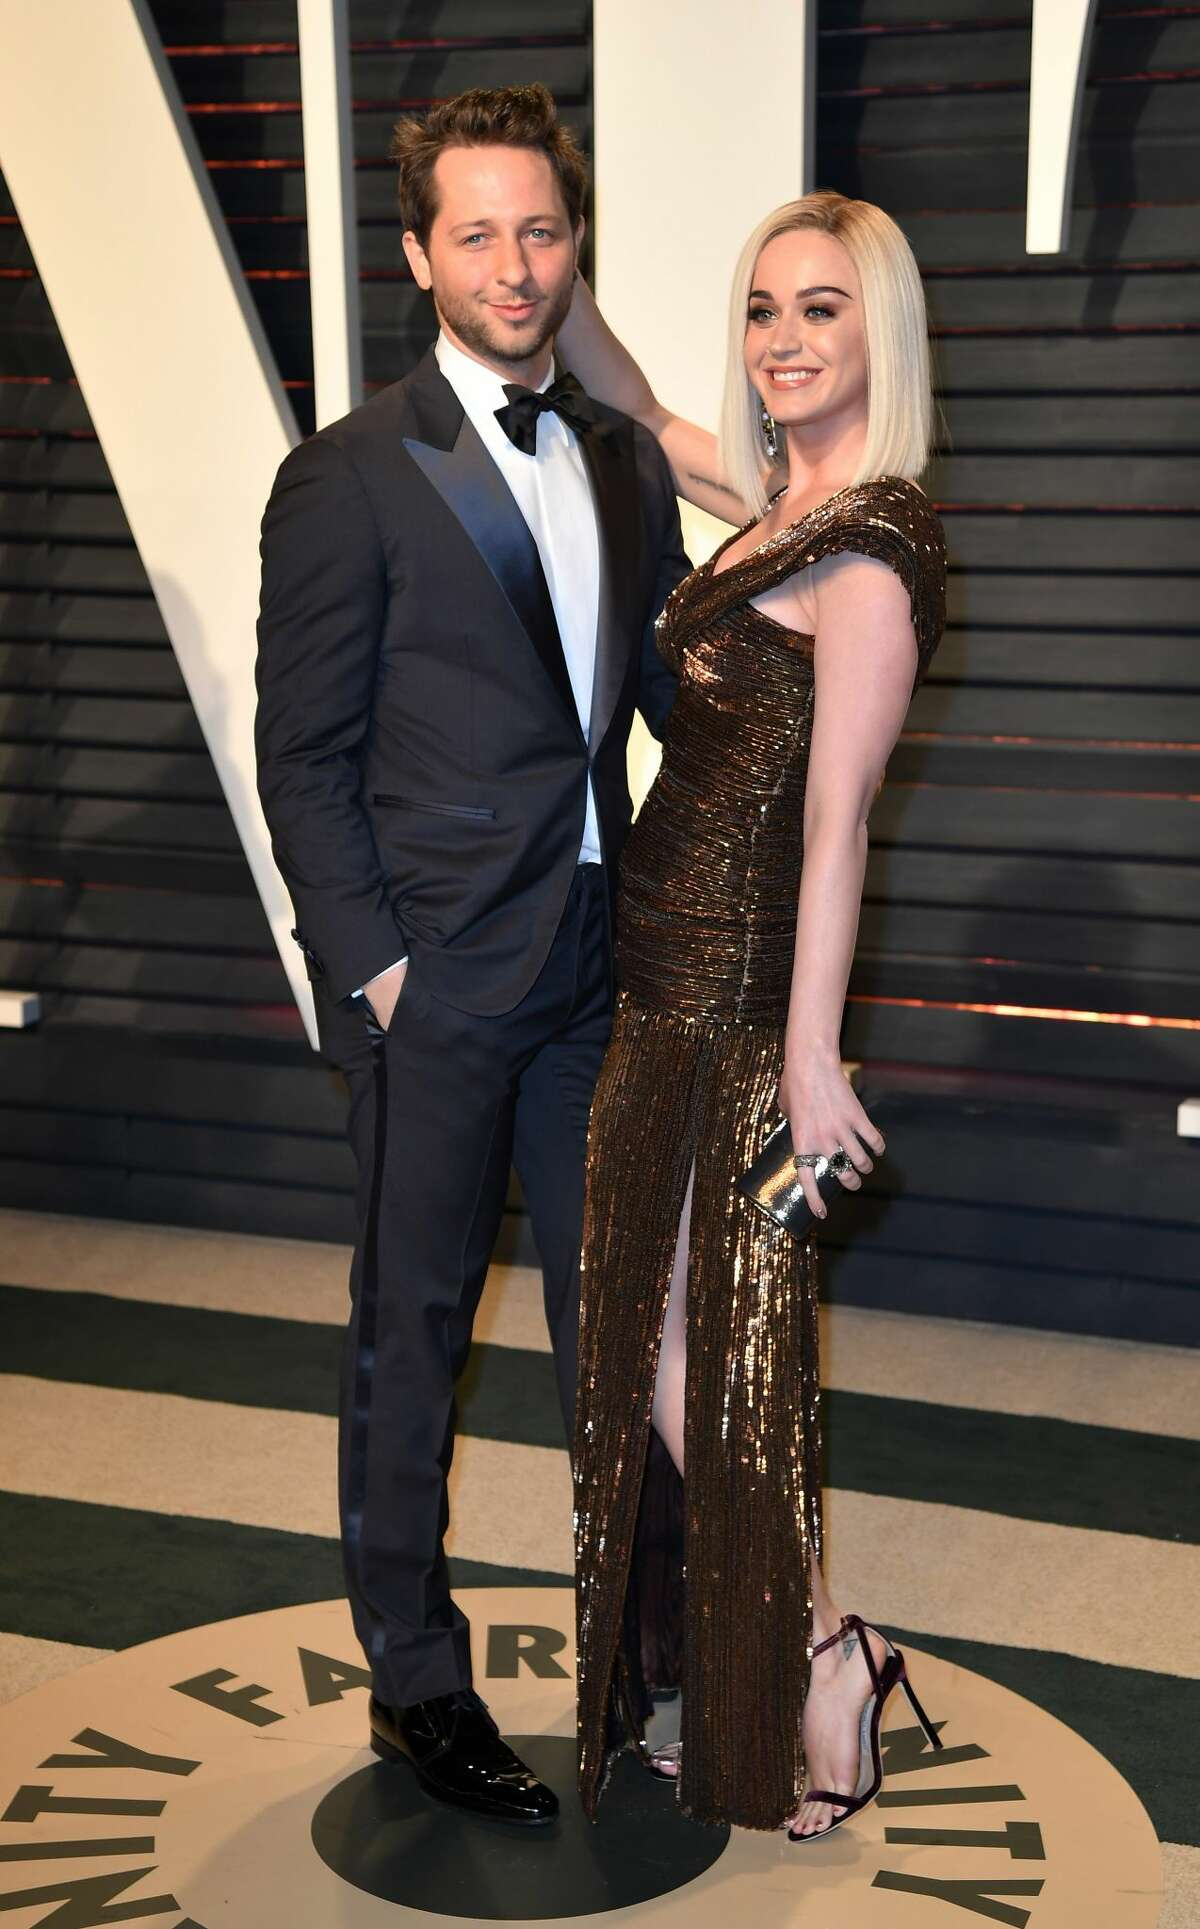 Katy Perry (R) and Derek Blasberg (L) pose as they arrive at the Vanity Fair Oscar Party in Beverly Hills, California, Los Angeles on February 26, 2017.